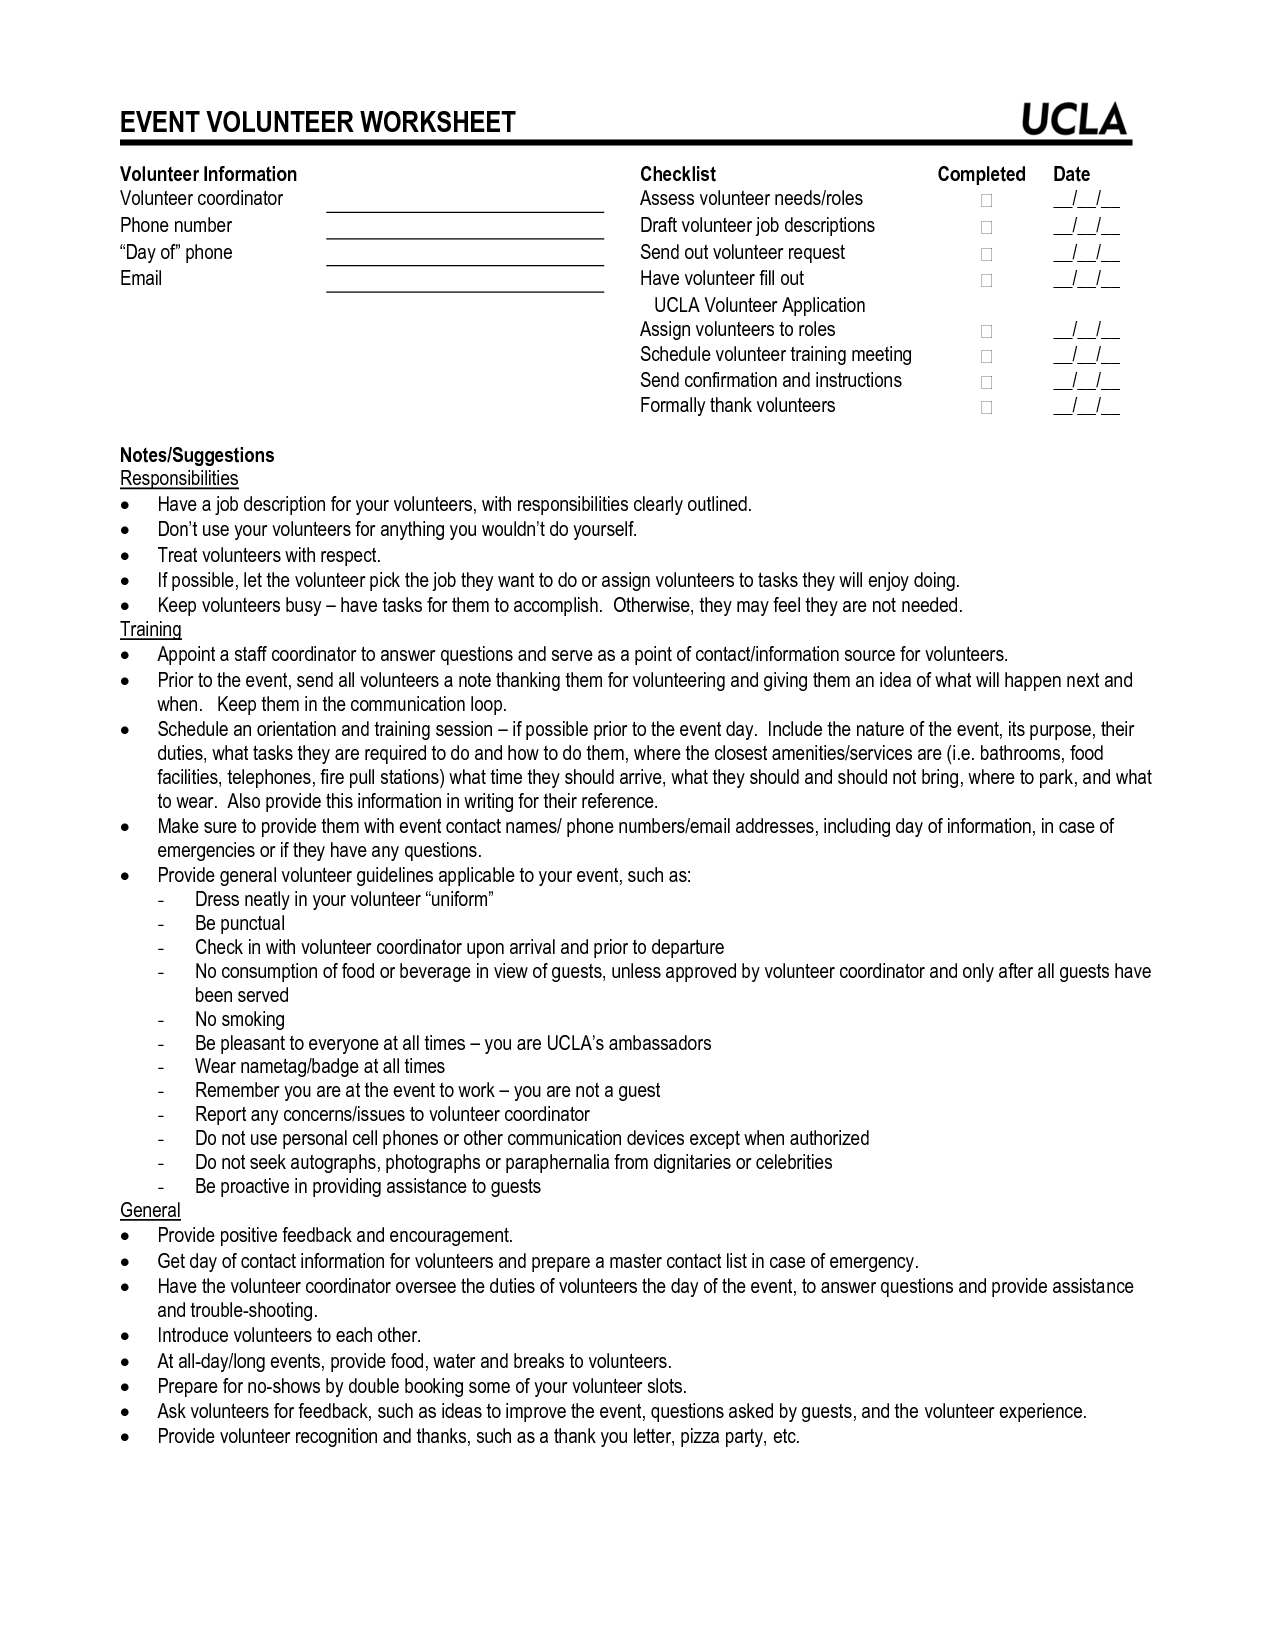 15 Best Images Of Menu Cost Worksheet Free Download